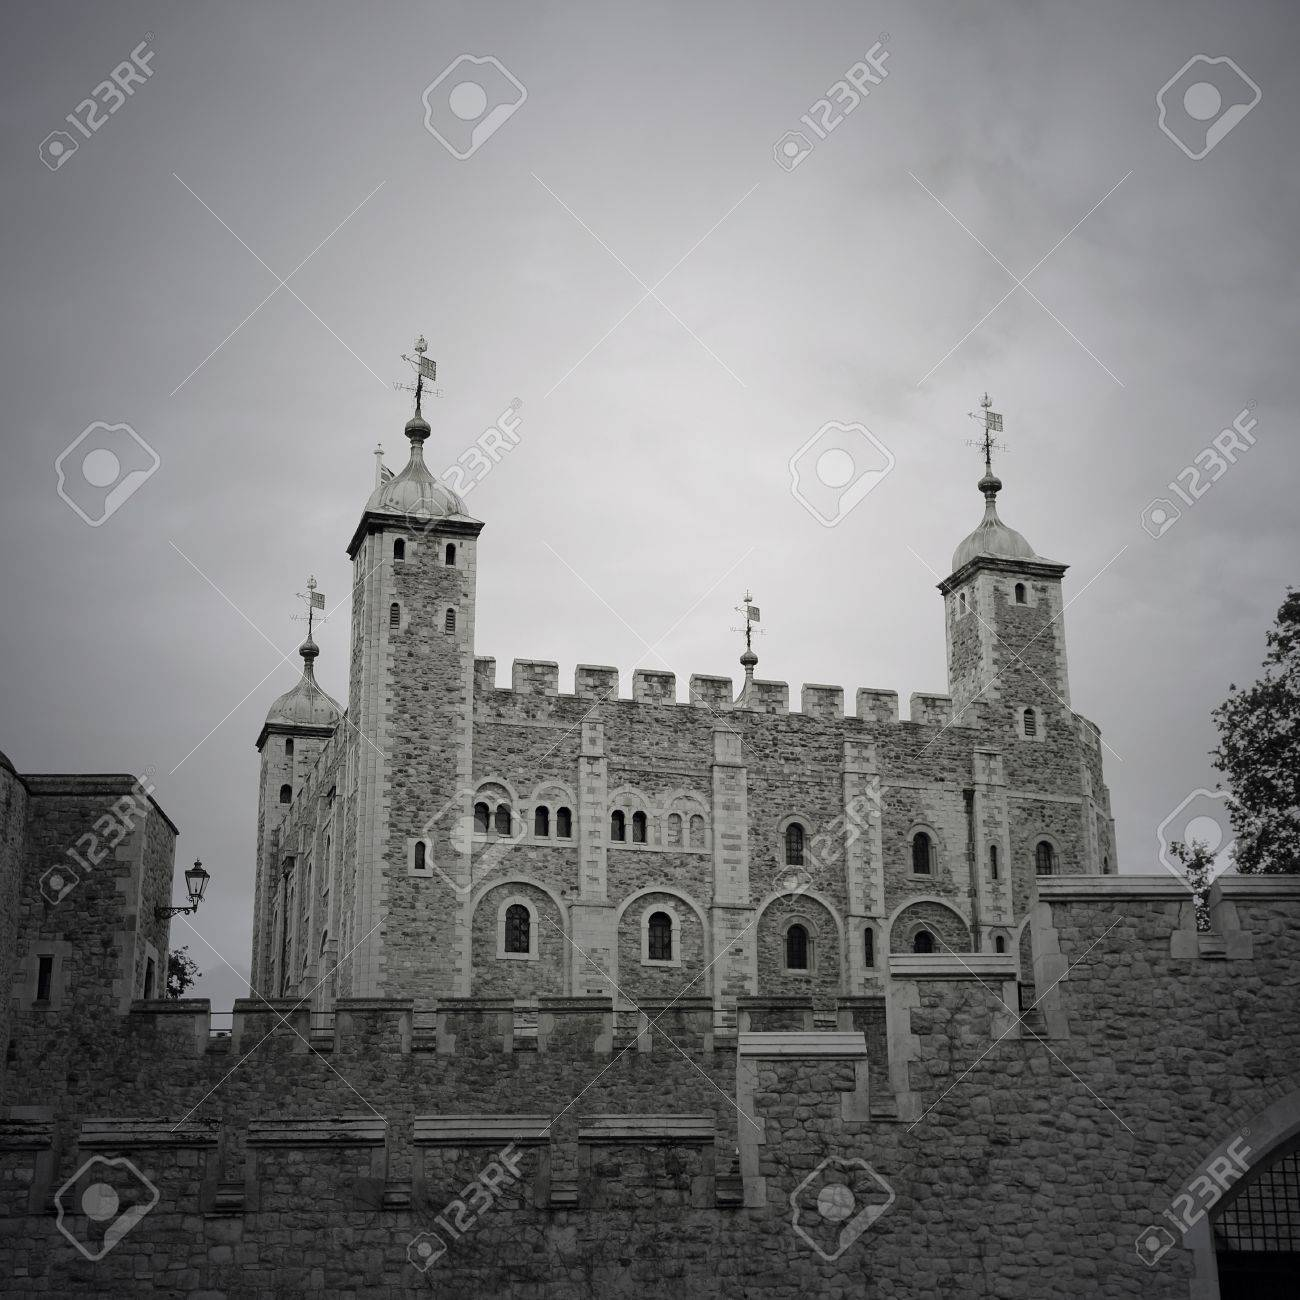 Tower of London, Her Majesty's Royal Palace and Fortress, now the castle is a popular tourist attraction. Stock Photo - 15855158